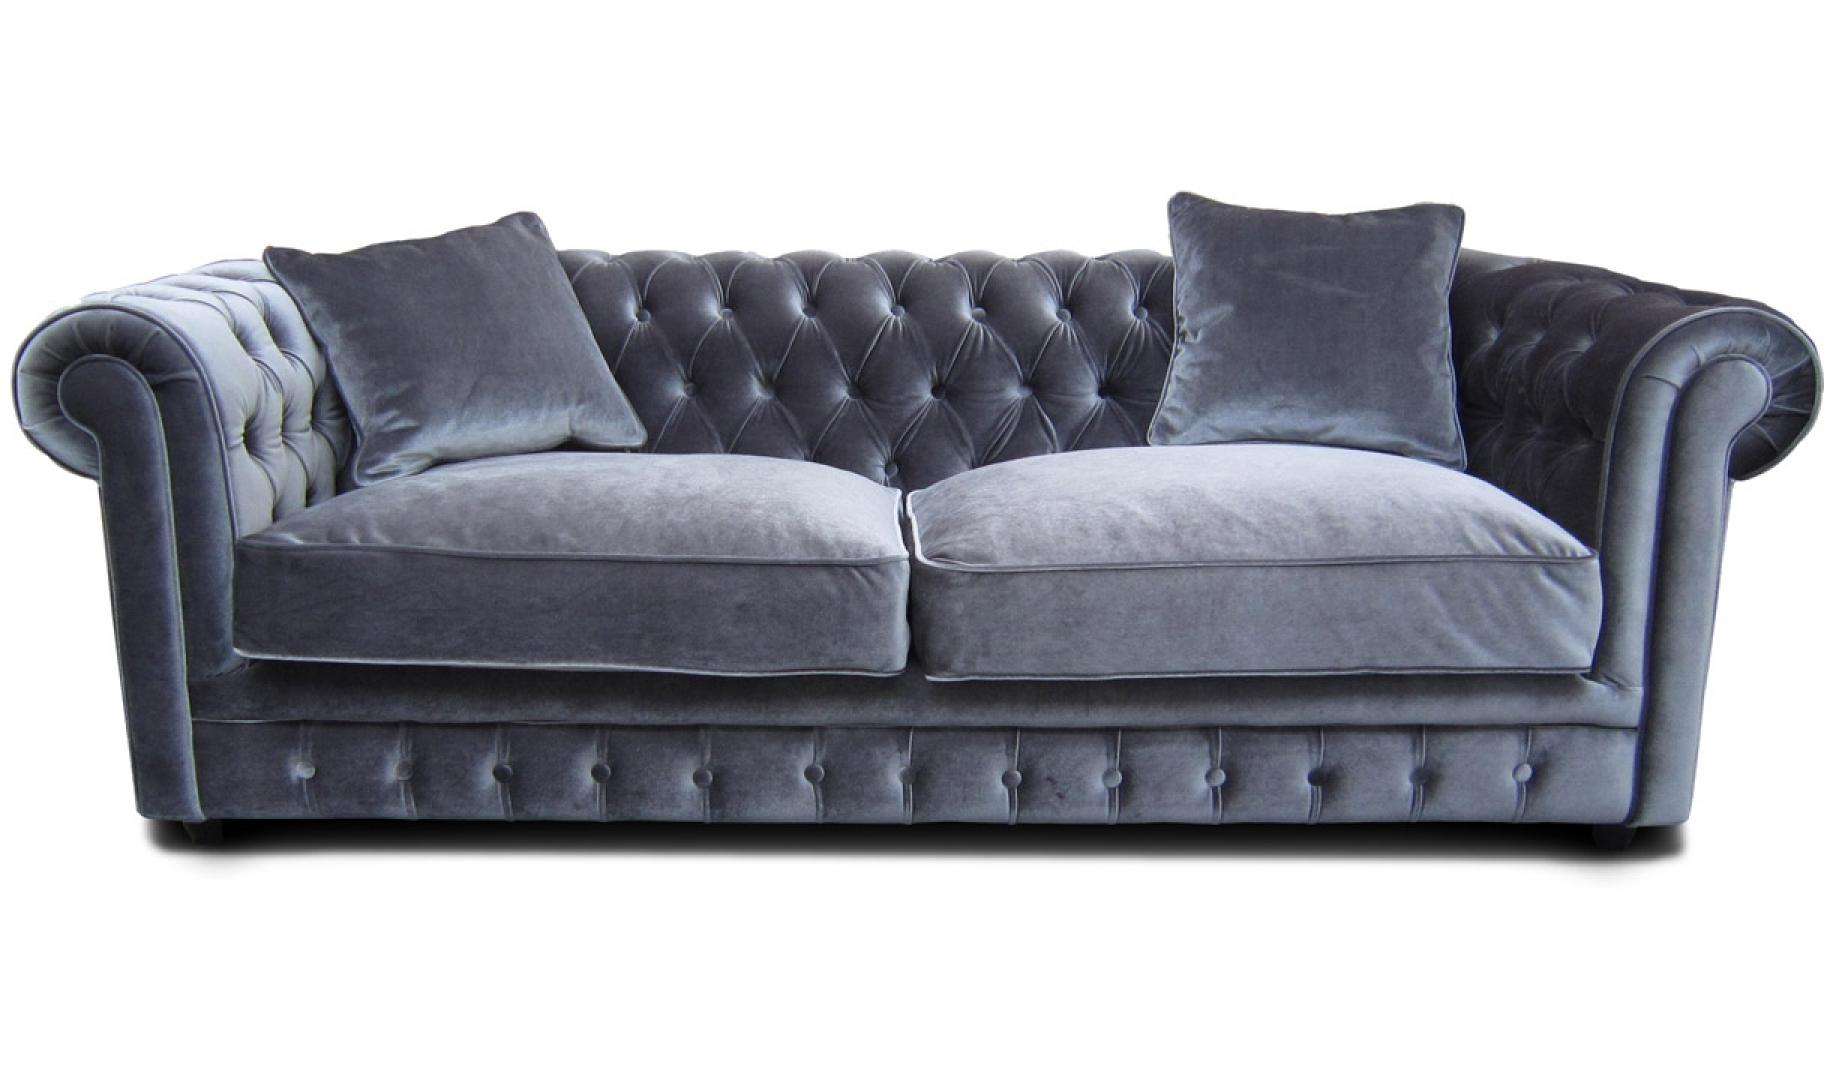 Canap chesterfield tissu - Canape type chesterfield ...